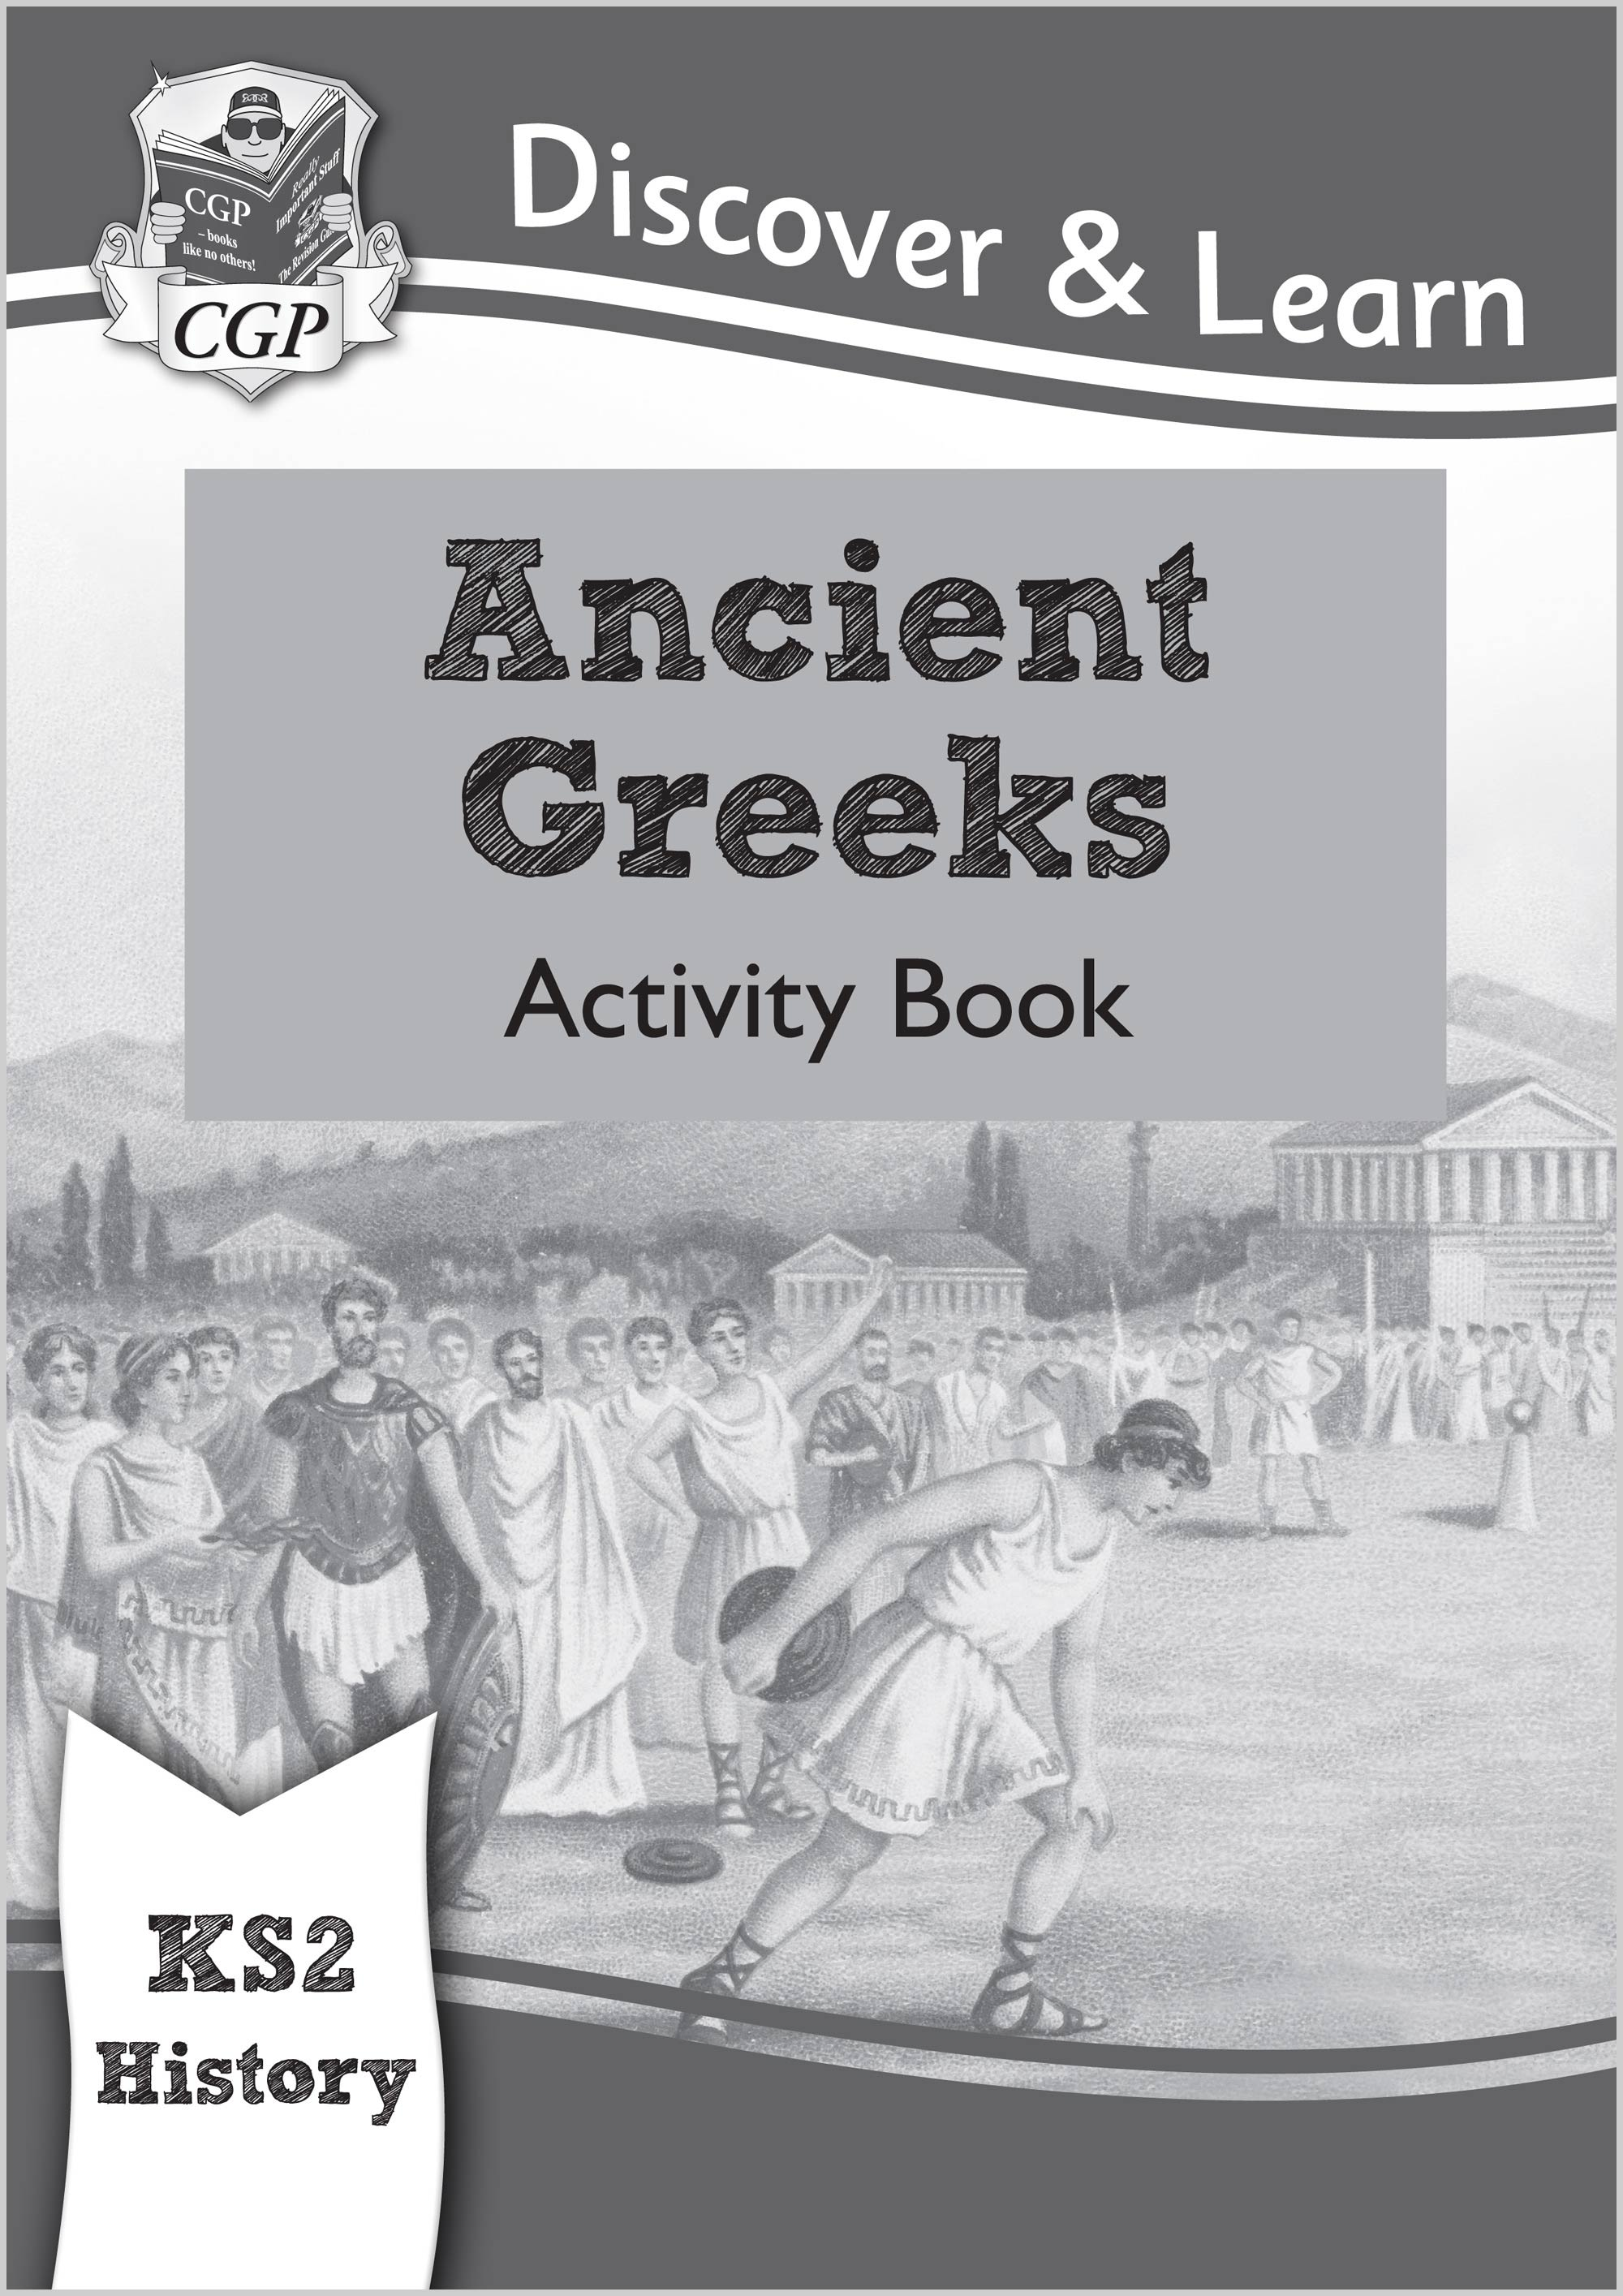 HGW21 - New KS2 Discover & Learn: History - Ancient Greeks Activity Book